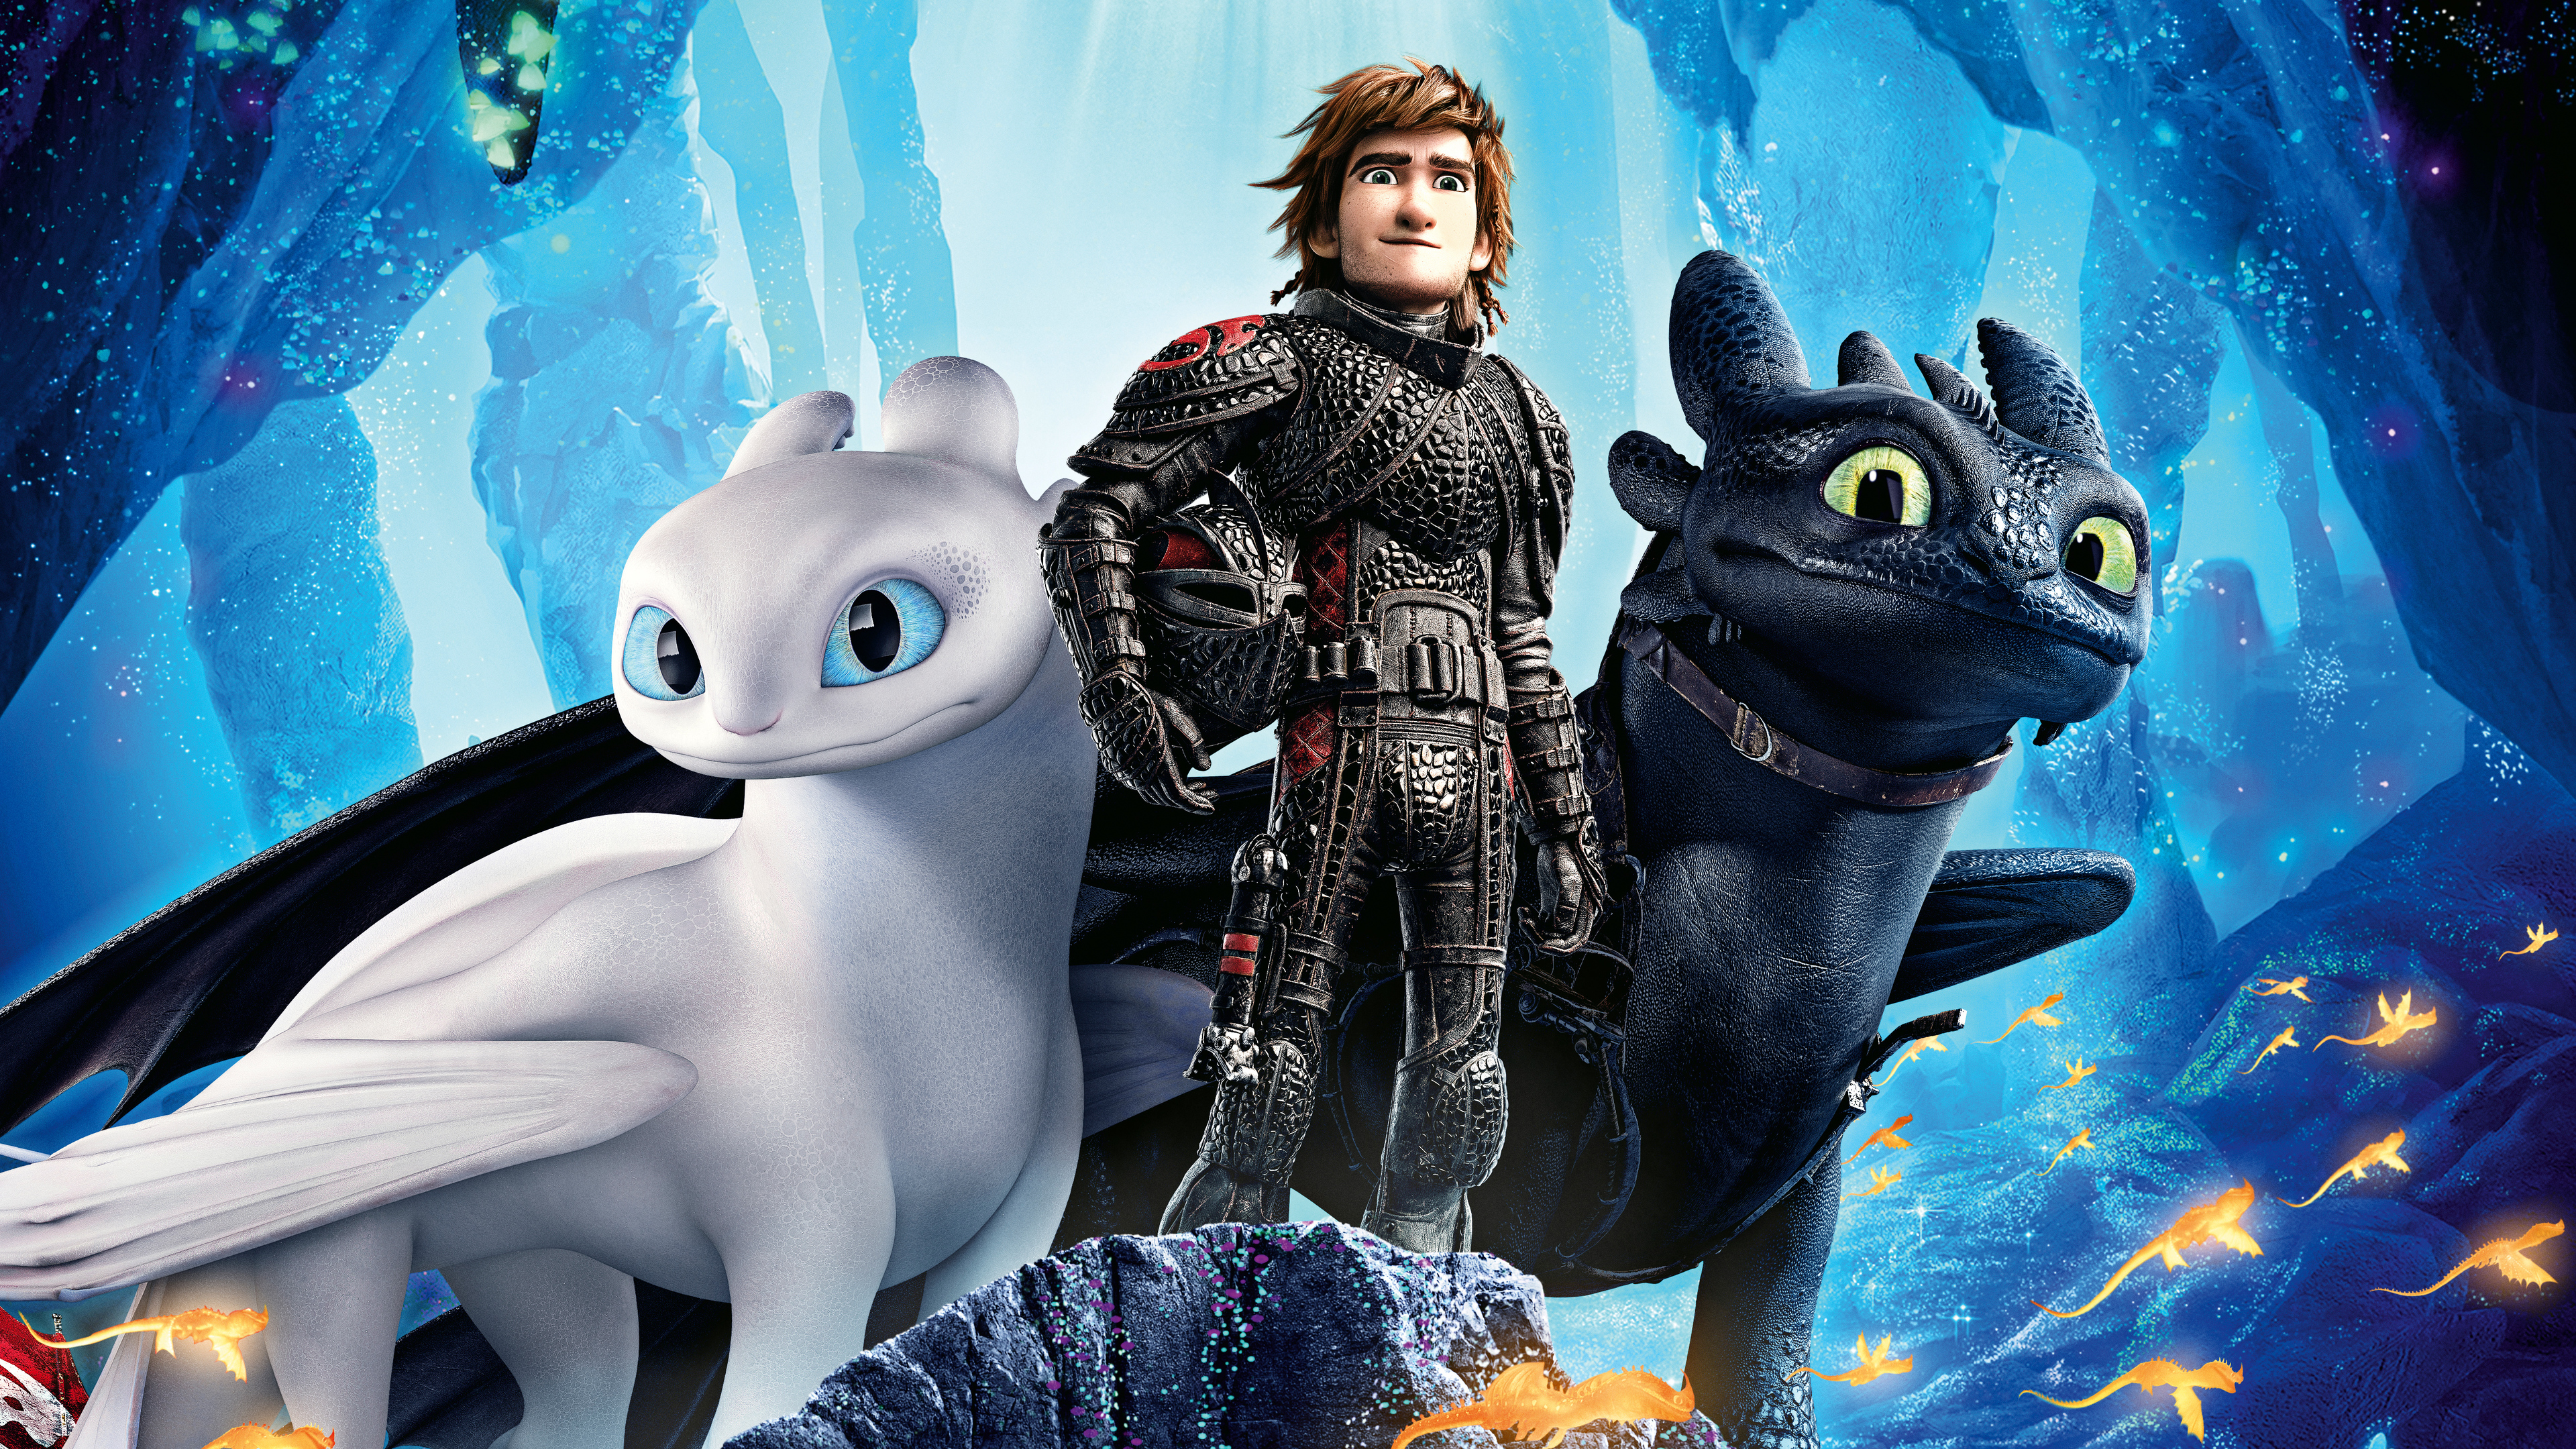 Wallpaper 4k How To Train Your Dragon Into The Hidden World